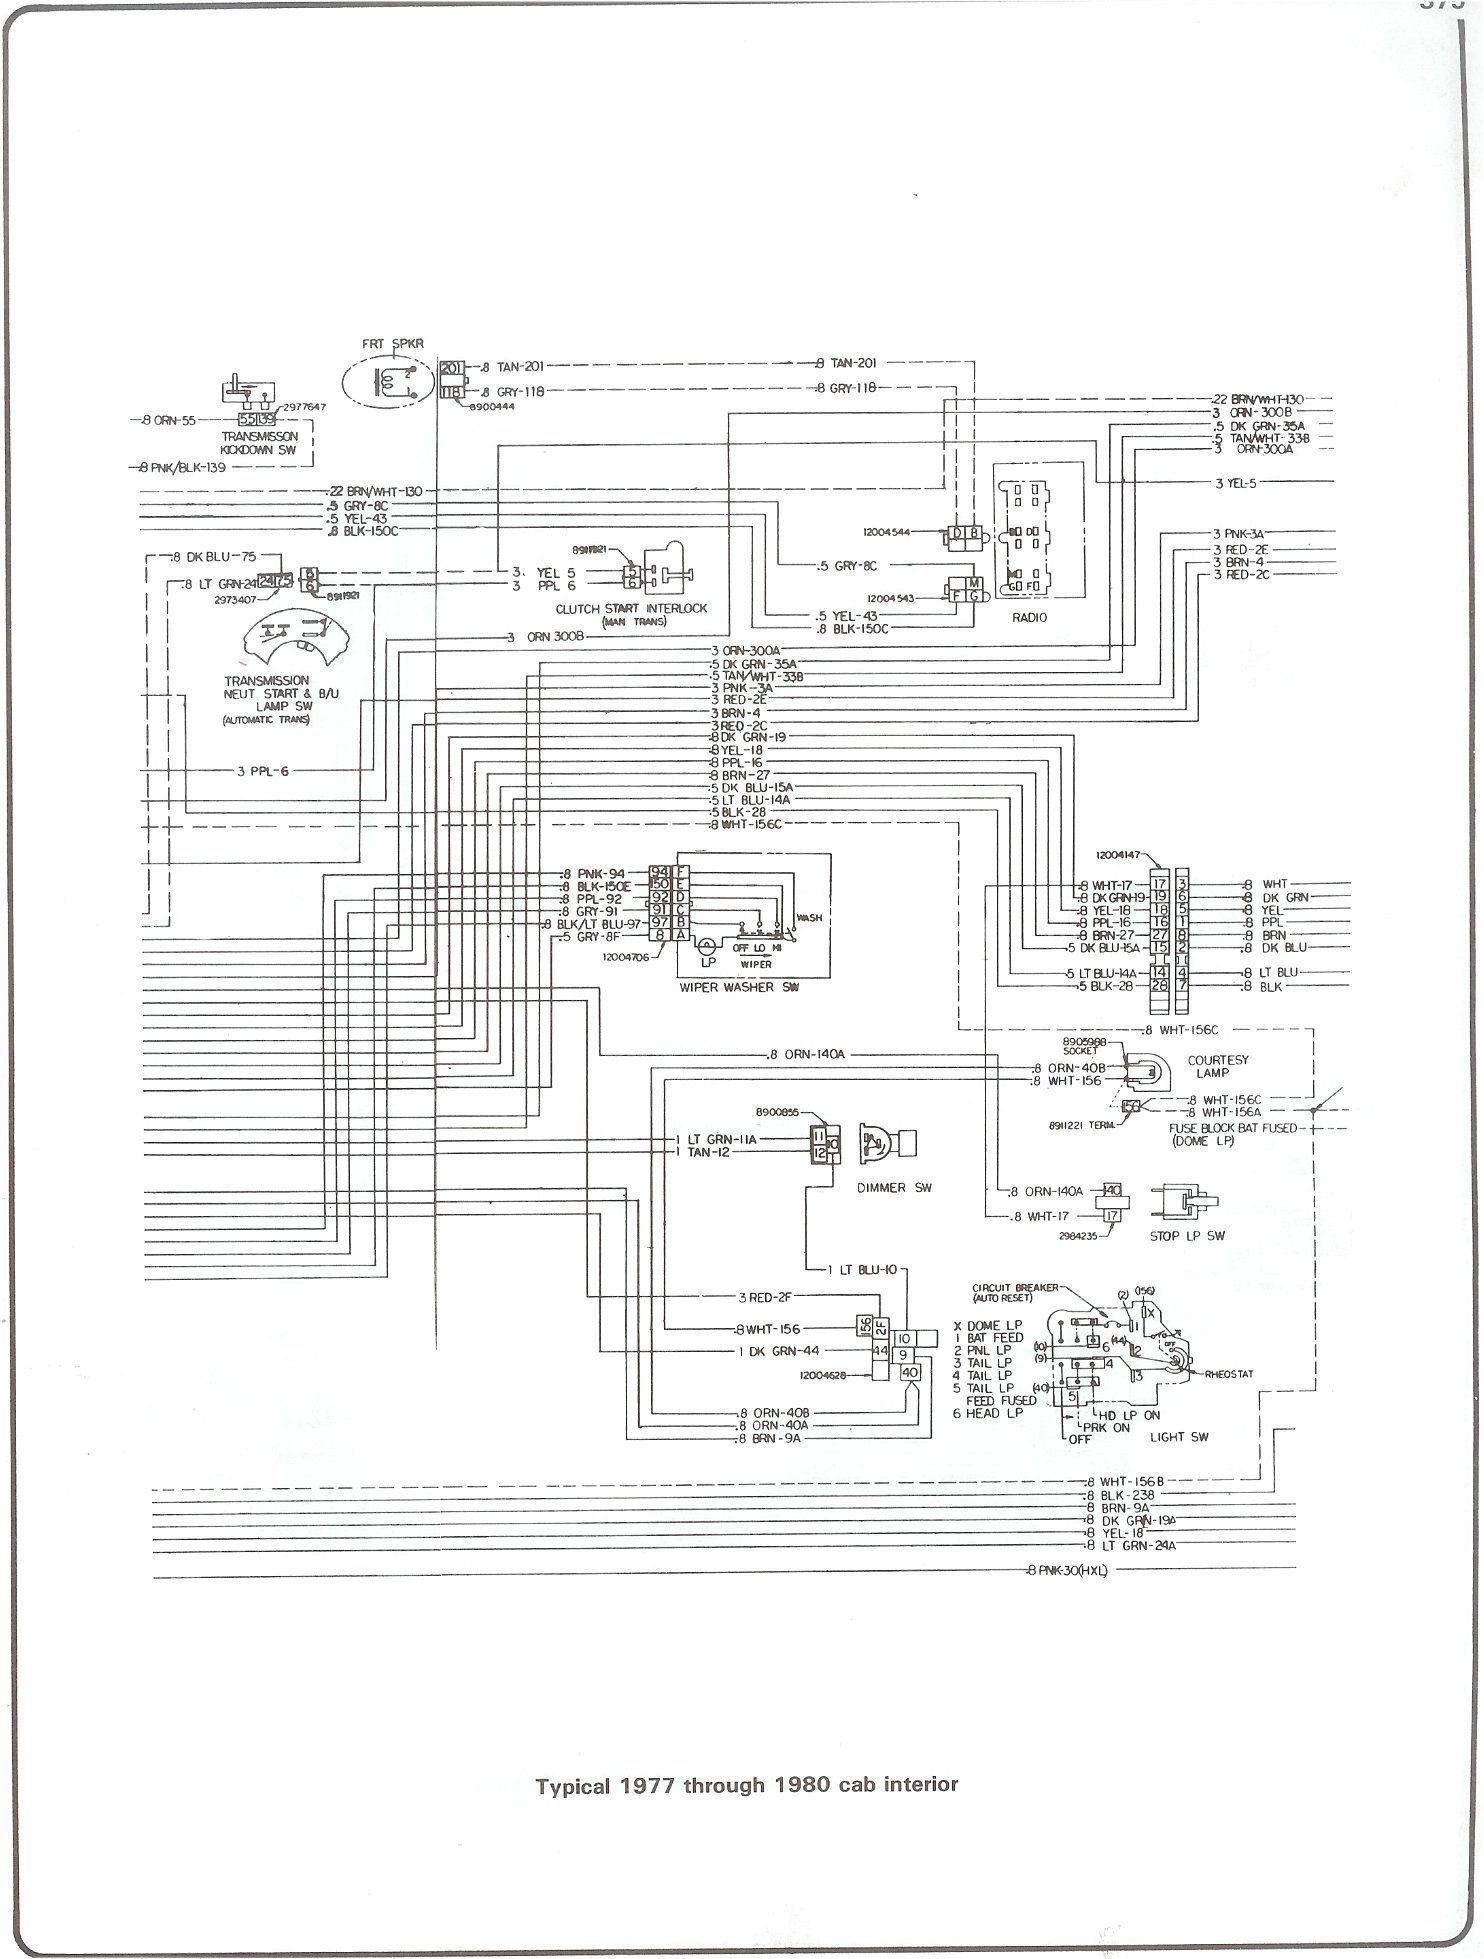 1984 C10 Wiring Harness Connectors Simple Diagram Chevy Van Complete 73 87 Diagrams 68 Truck